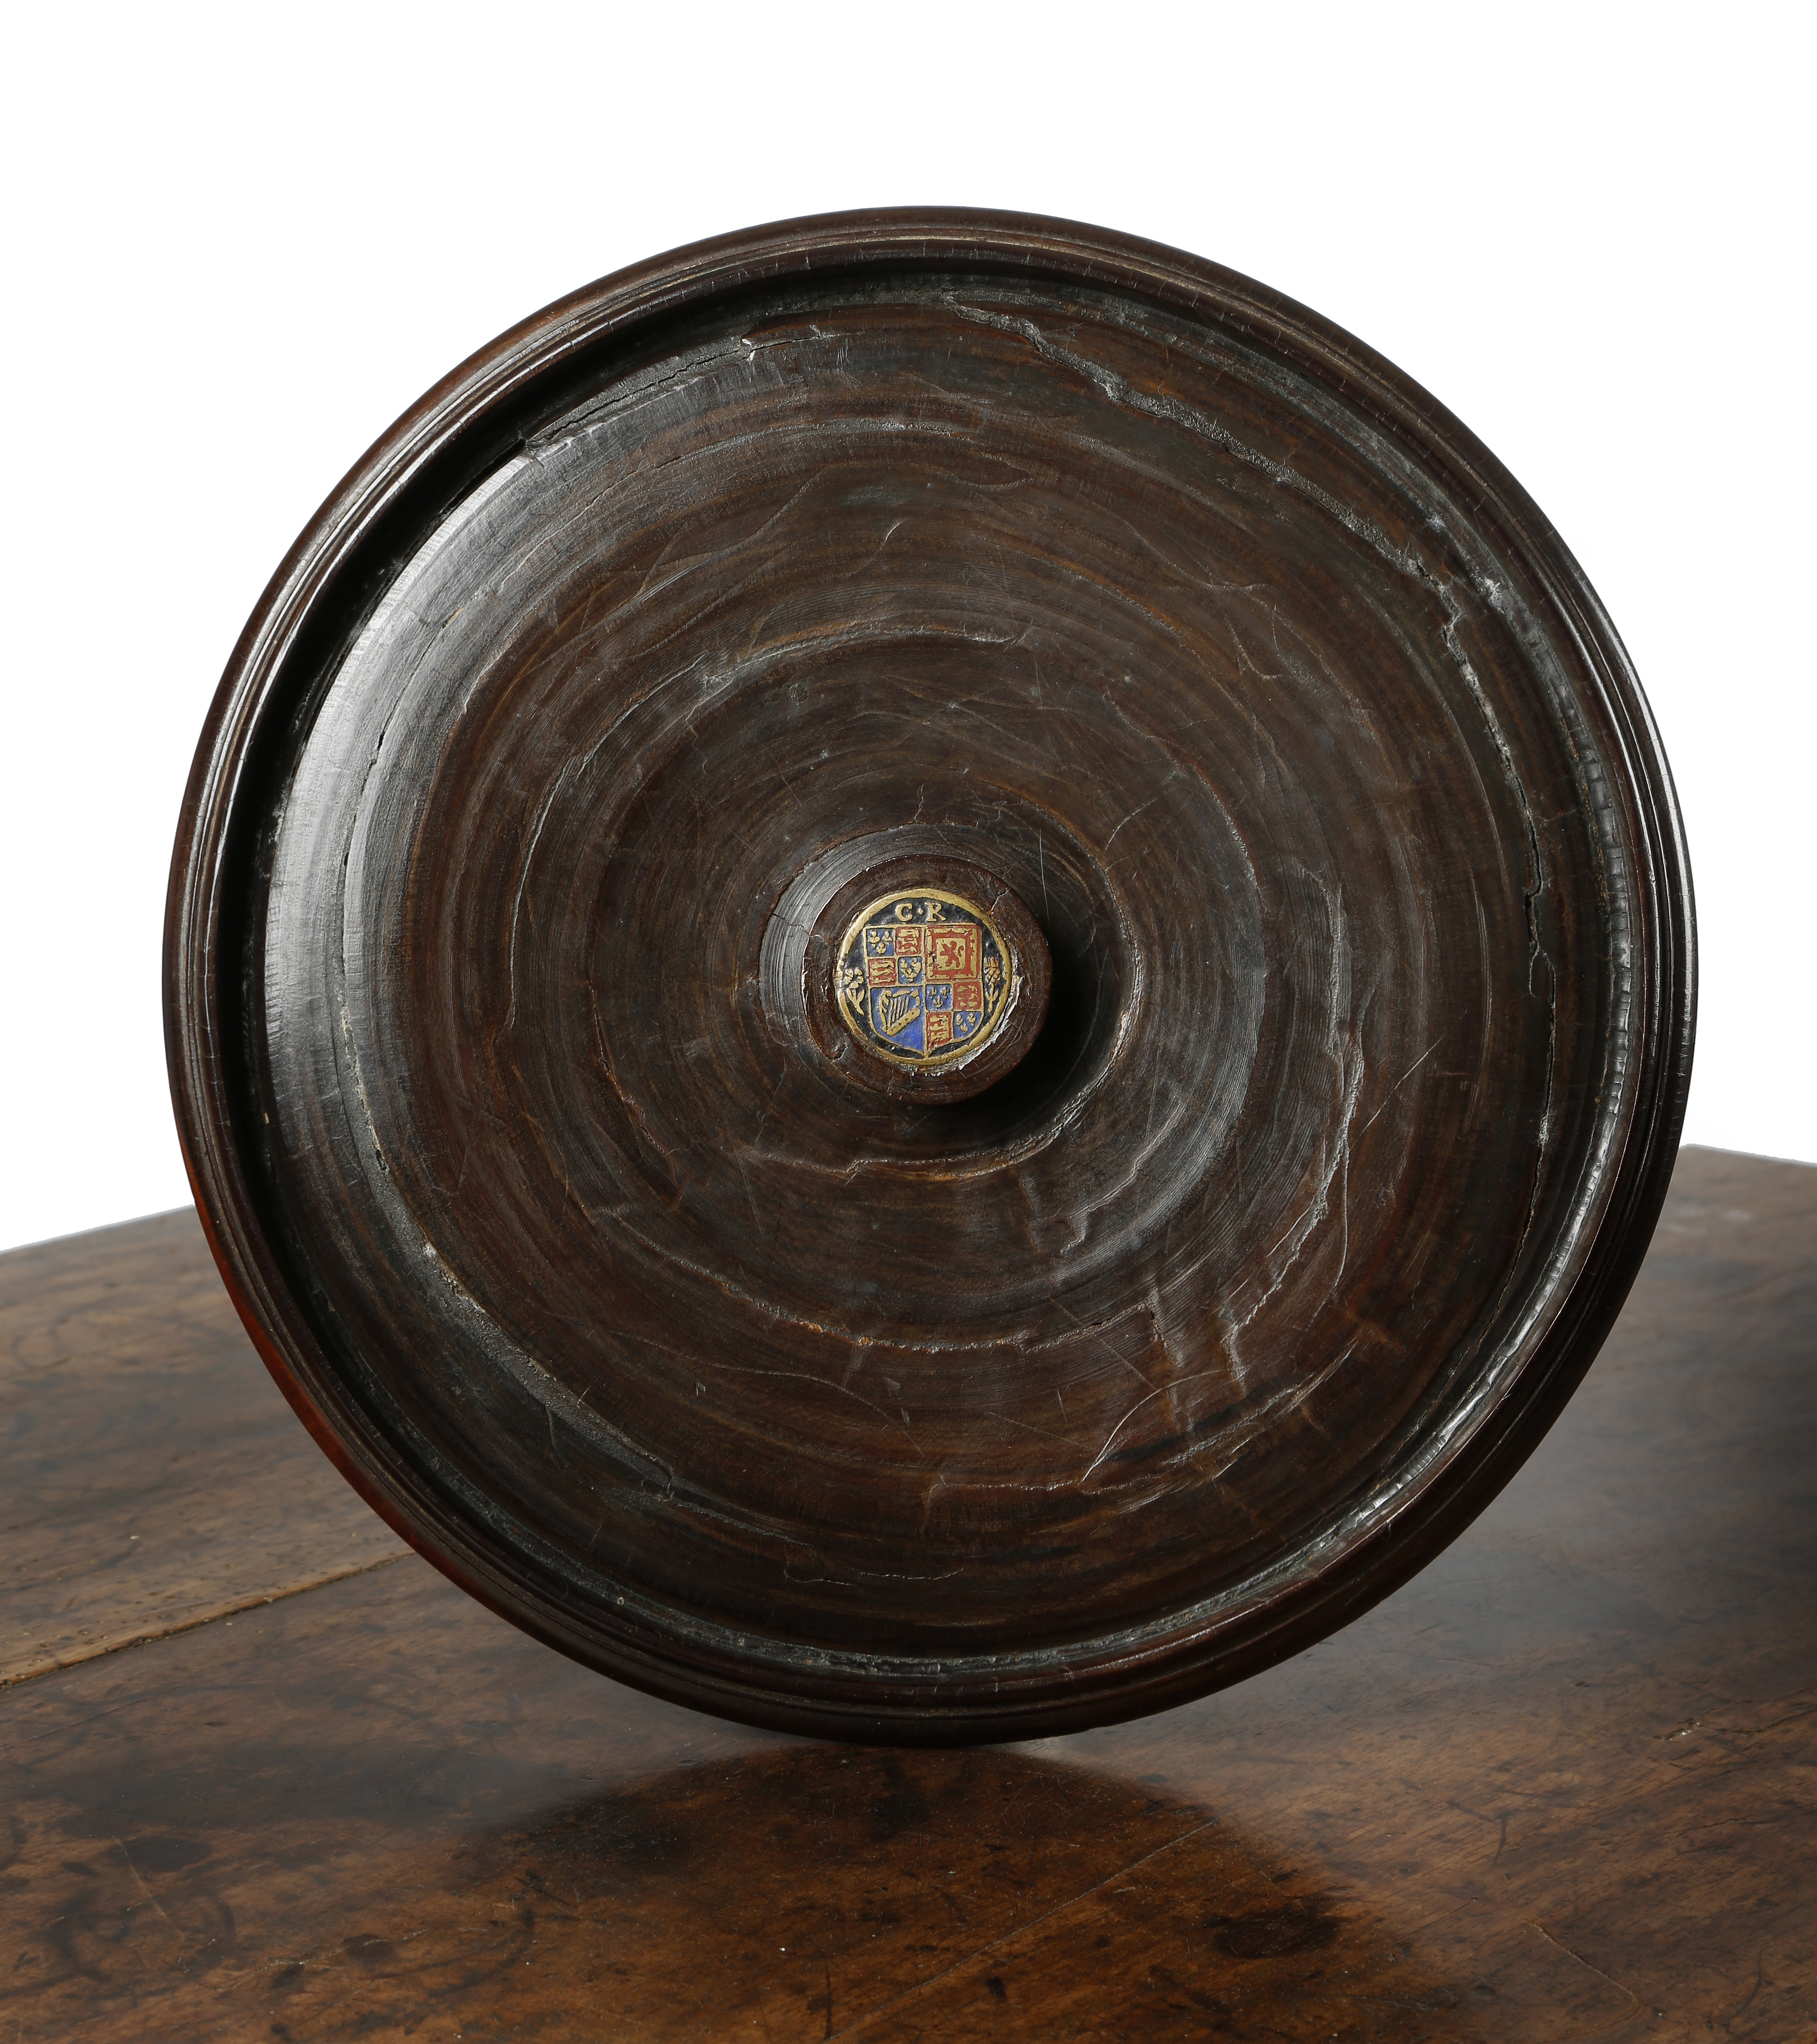 A FINE CHARLES II LIGNUM VITAE WASSAIL BOWL AND COVER C.1660-70 the lid with a turned cup and - Image 2 of 2